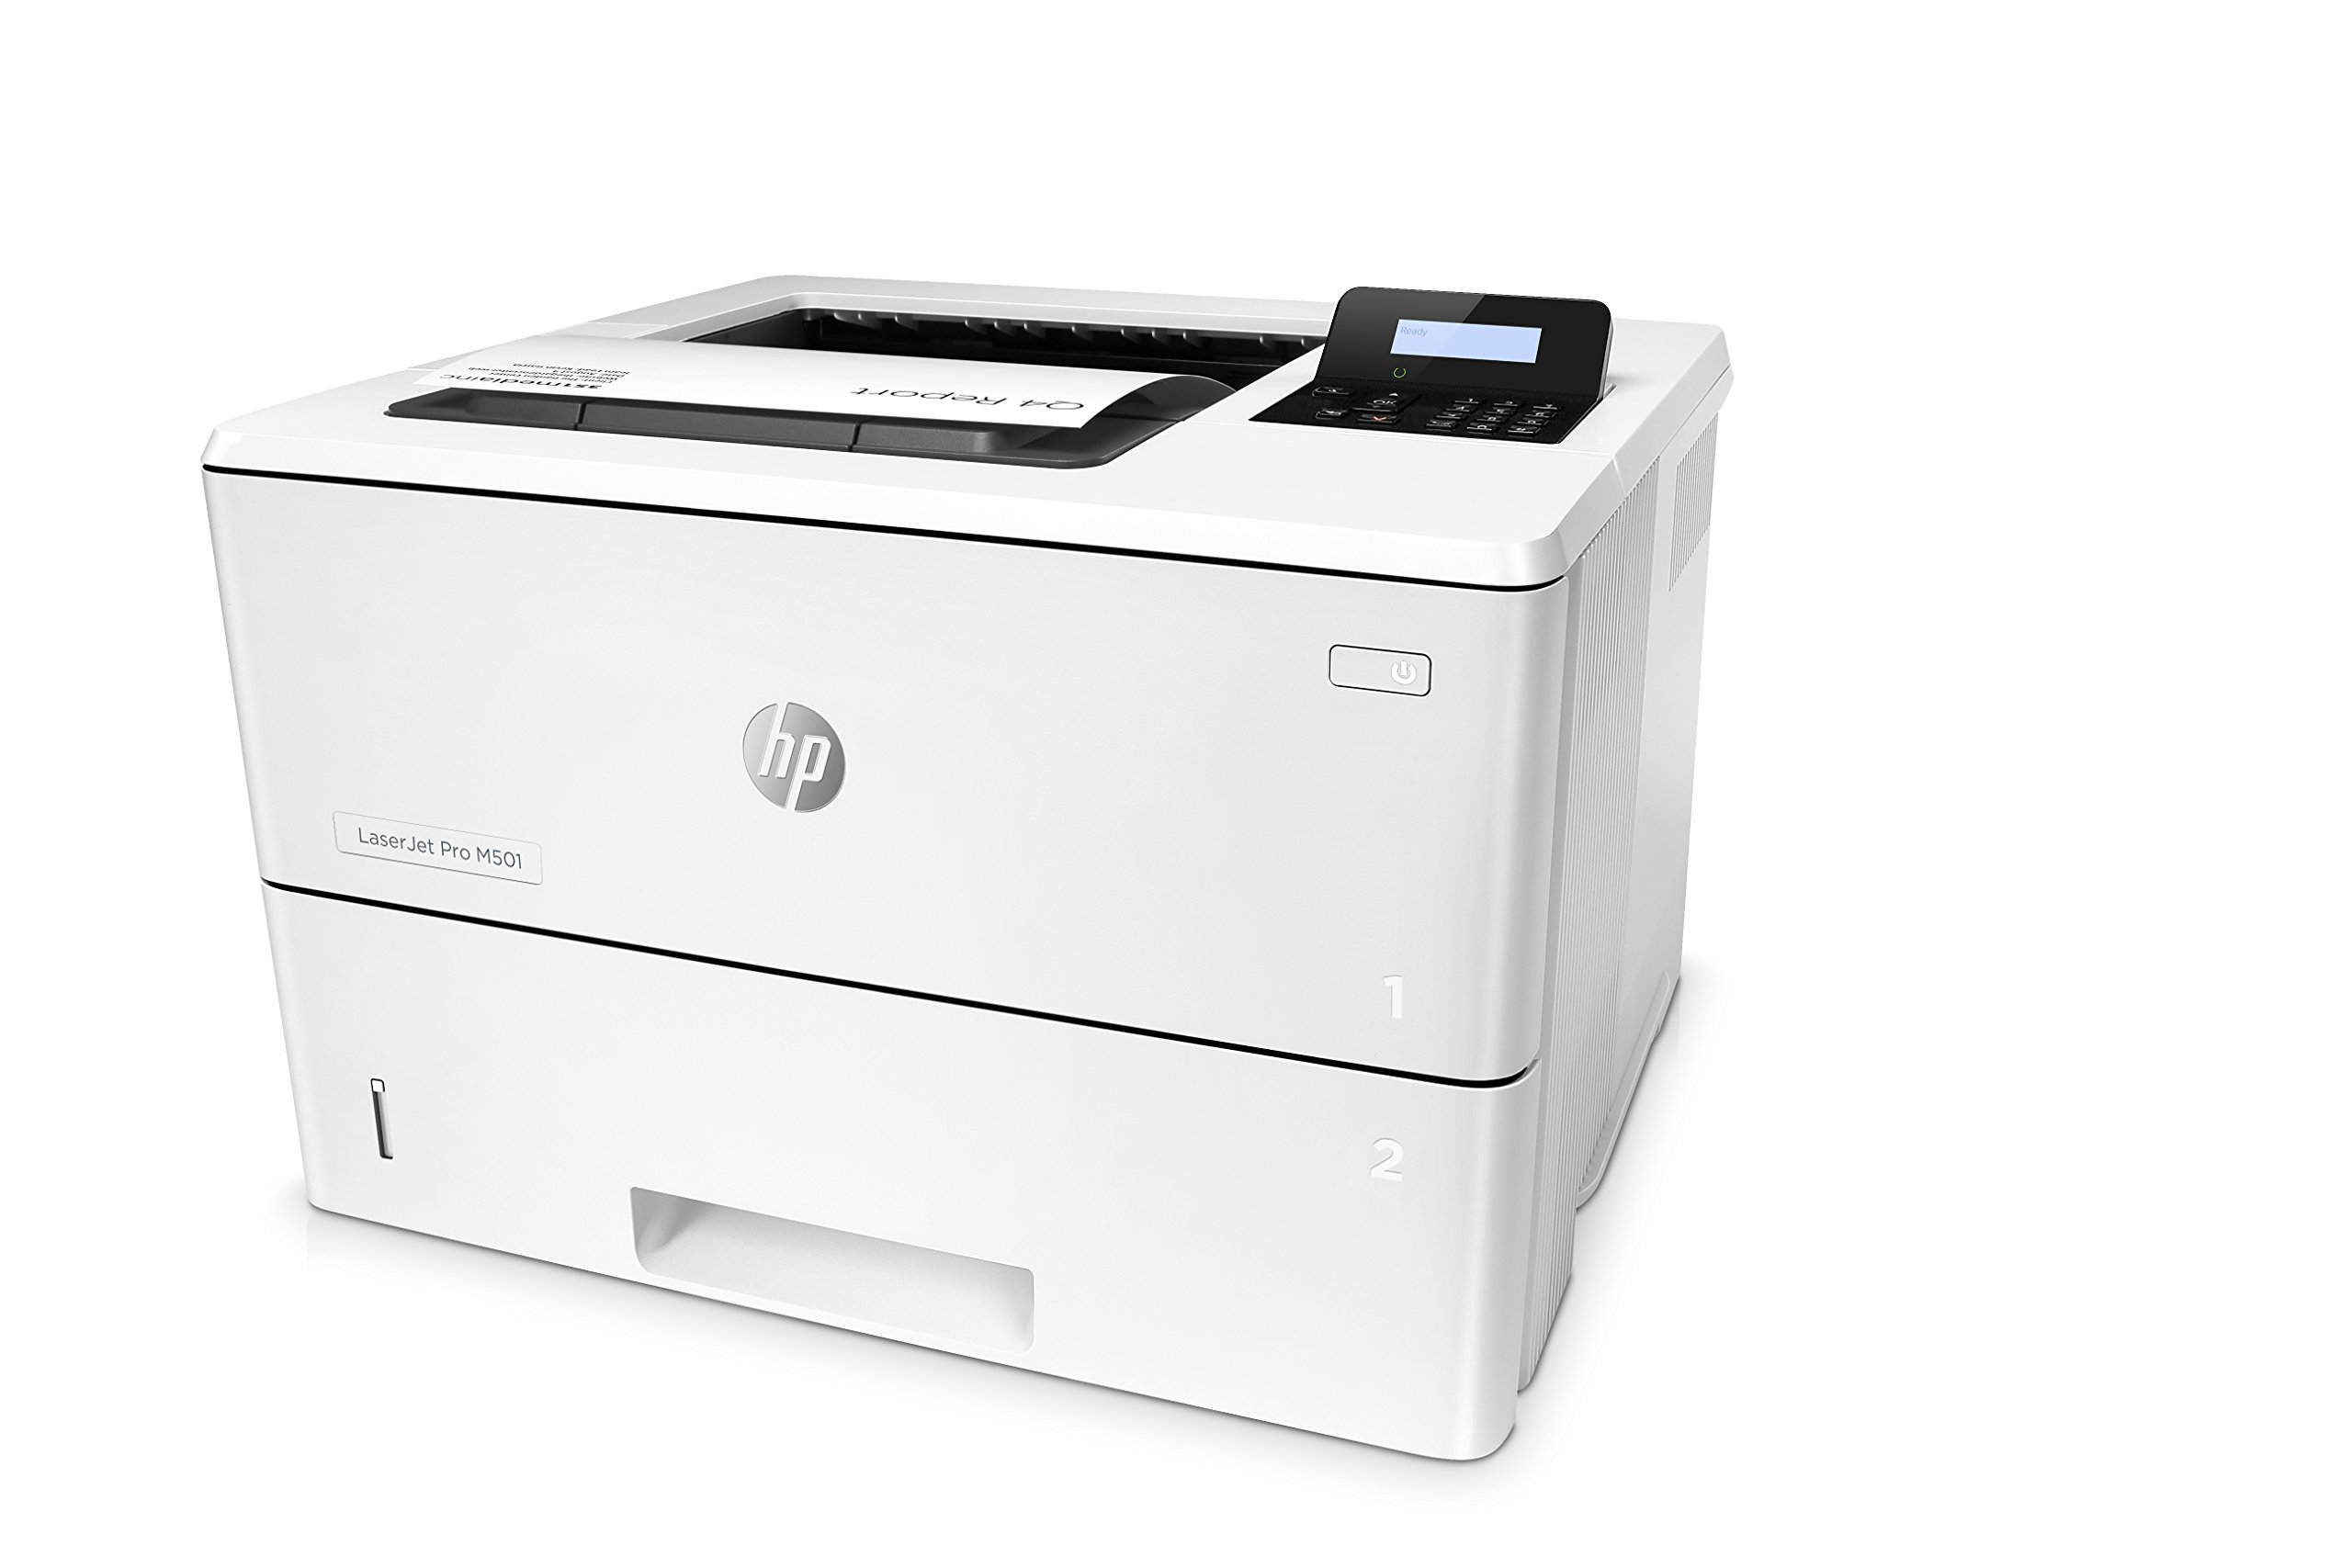 HP Monochrome LaserJet Pro M501dn w/ HP JetAdvantage Security, (J8H61A#BGJ) by HP (Image #3)